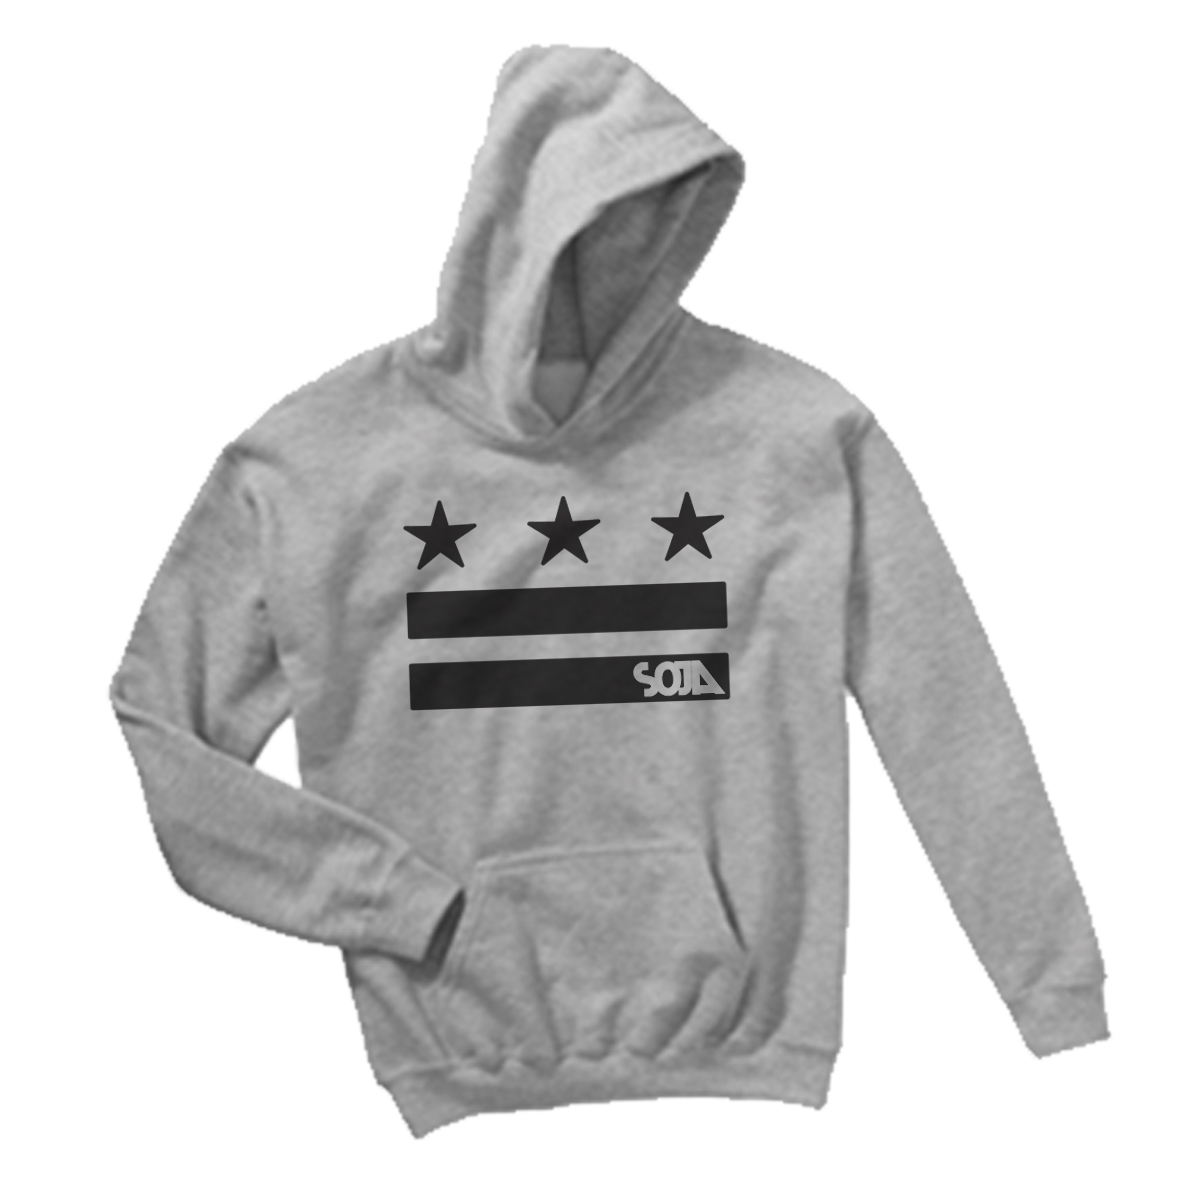 Pullover Hoodie - Stars & Stripes Logo Cutout - Heather Grey